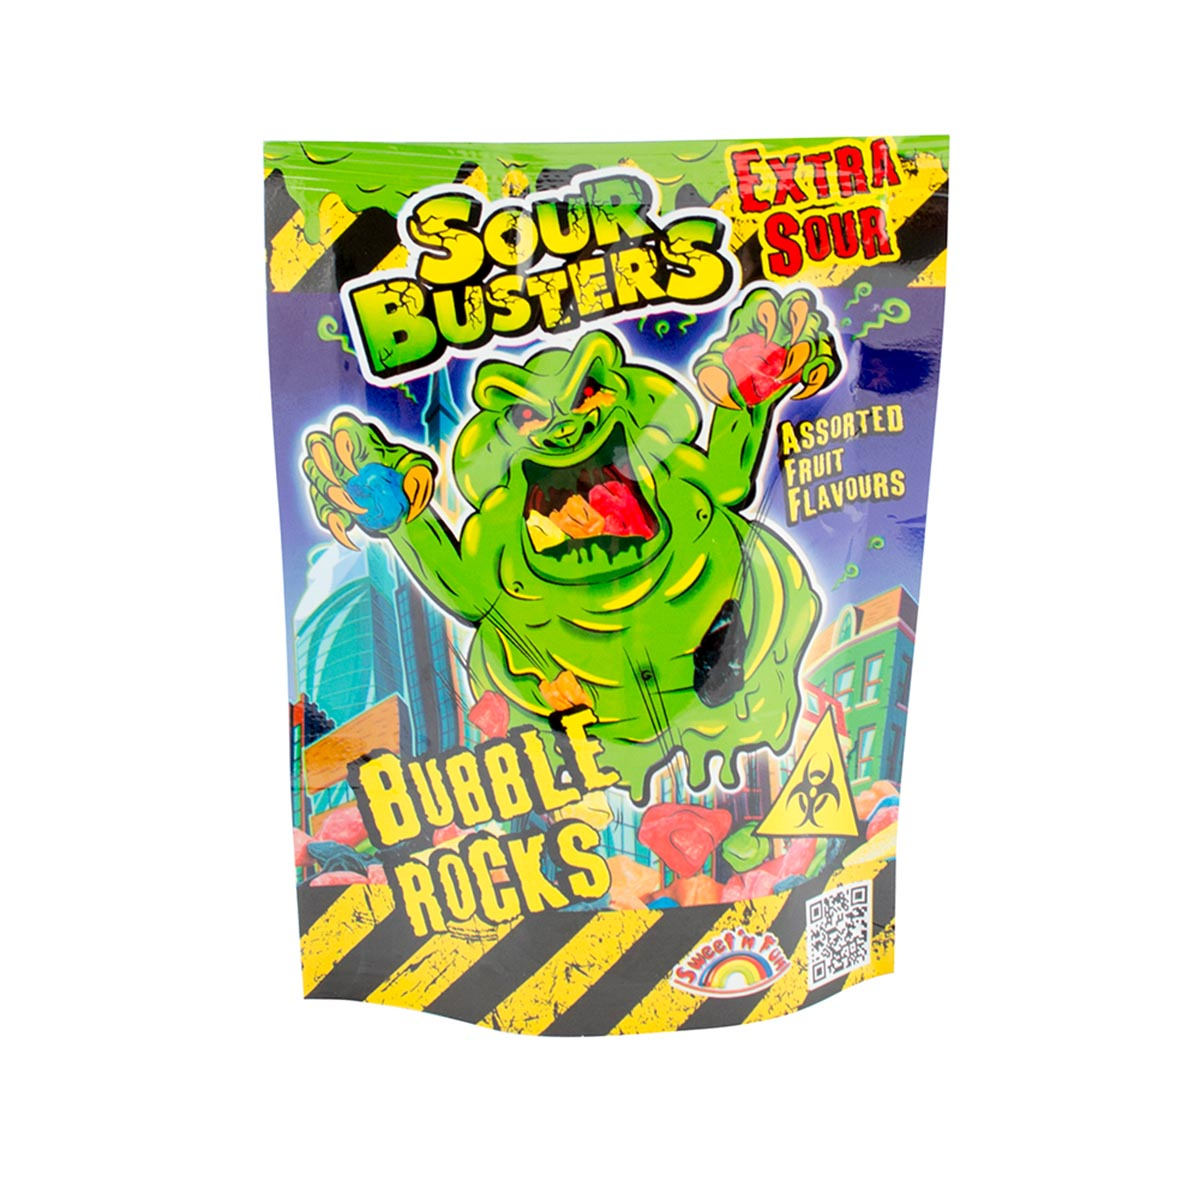 Sour Busters Gum Nuggets